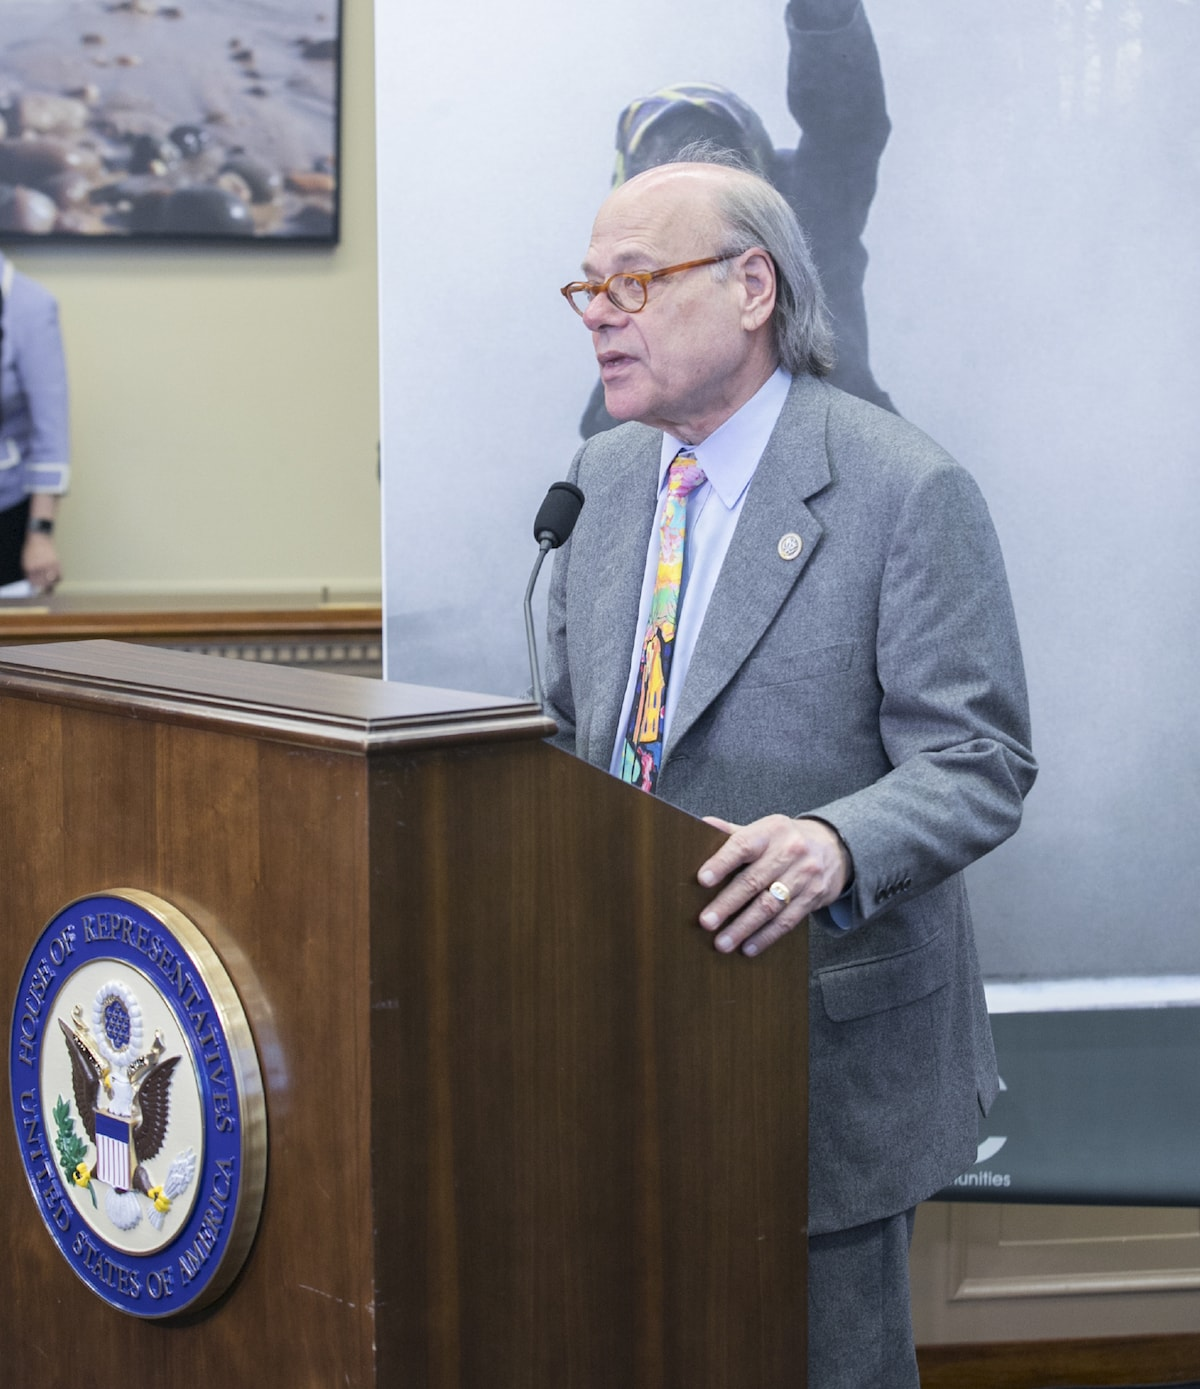 Events • Iranian Cultural Events in USA Bi-Partisan Members of Congress support a free Iran at Capitol Hill event marking Nowruz, the Iranian New Year